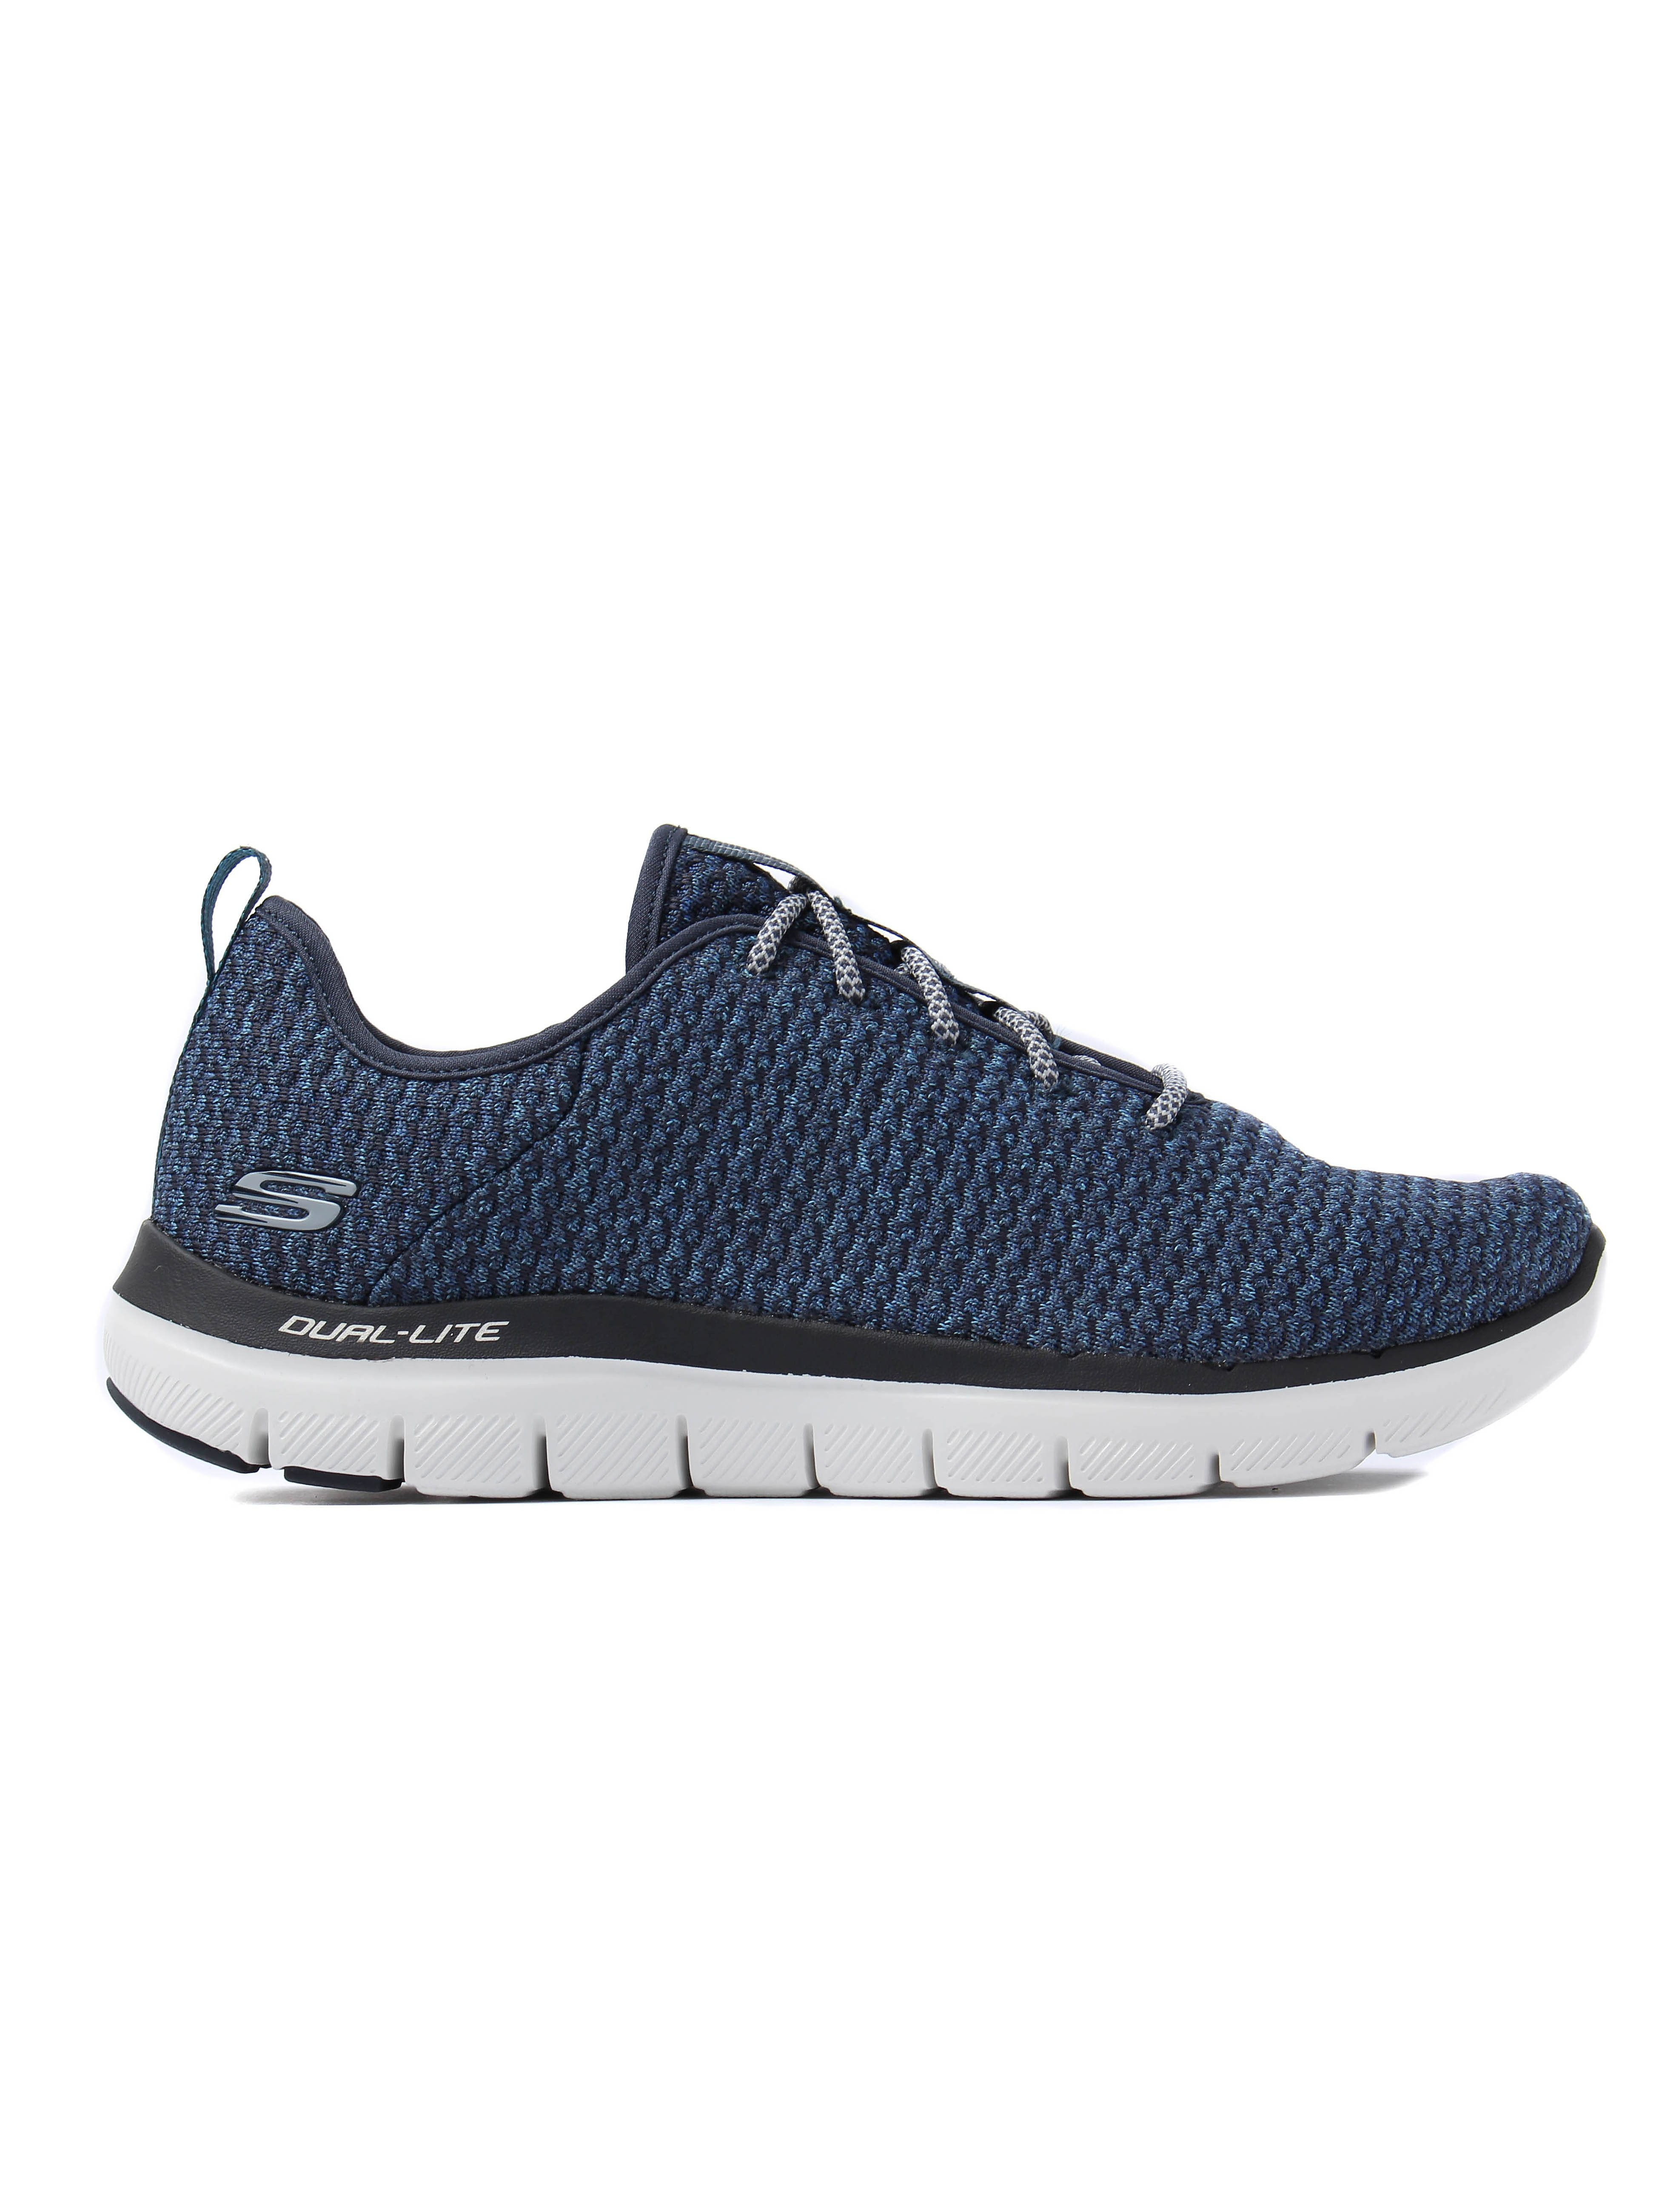 Skechers Men's Flex Advantage 2.0 Cravy Trainers - Navy